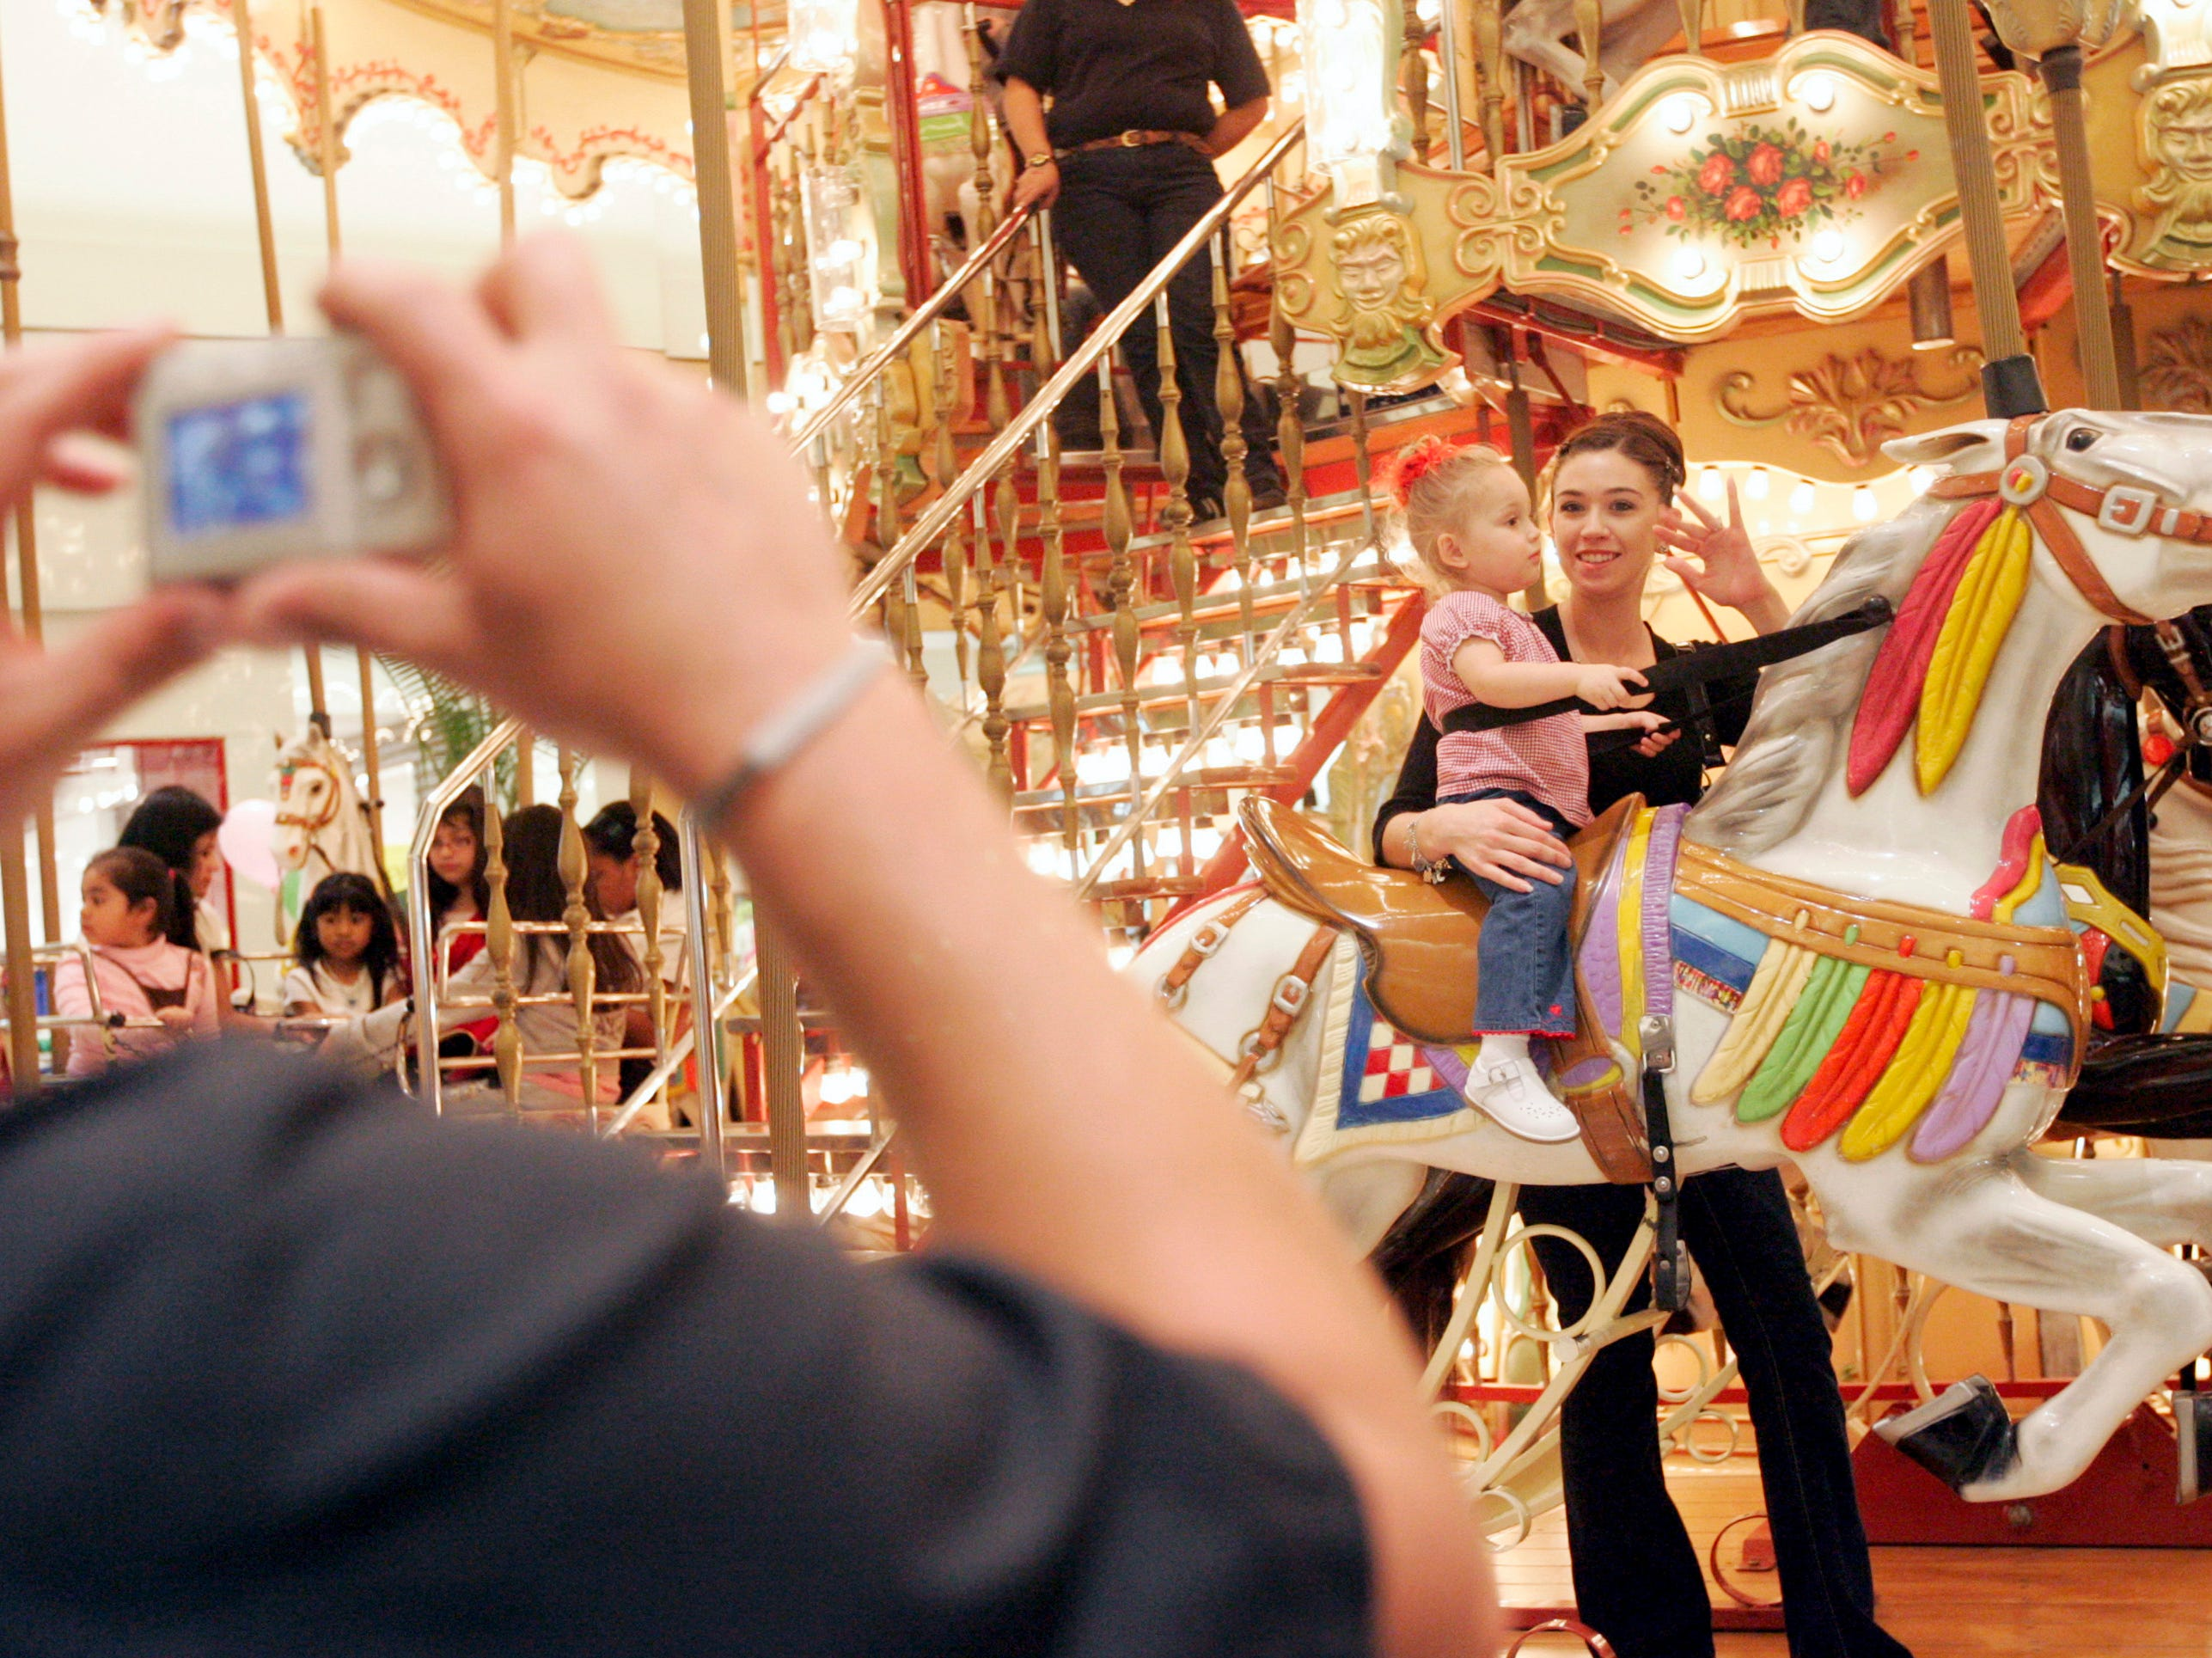 Stefanie Simmons waves to husband, Travis, as she and 2-year-old Kadie Simmons start spinning on the carousel Saturday, Jan. 31, 2009 at La Palmera in Corpus Christi. Stefanie Simmons said the carousel was always a special treat for their daughter each time they came to the mall.